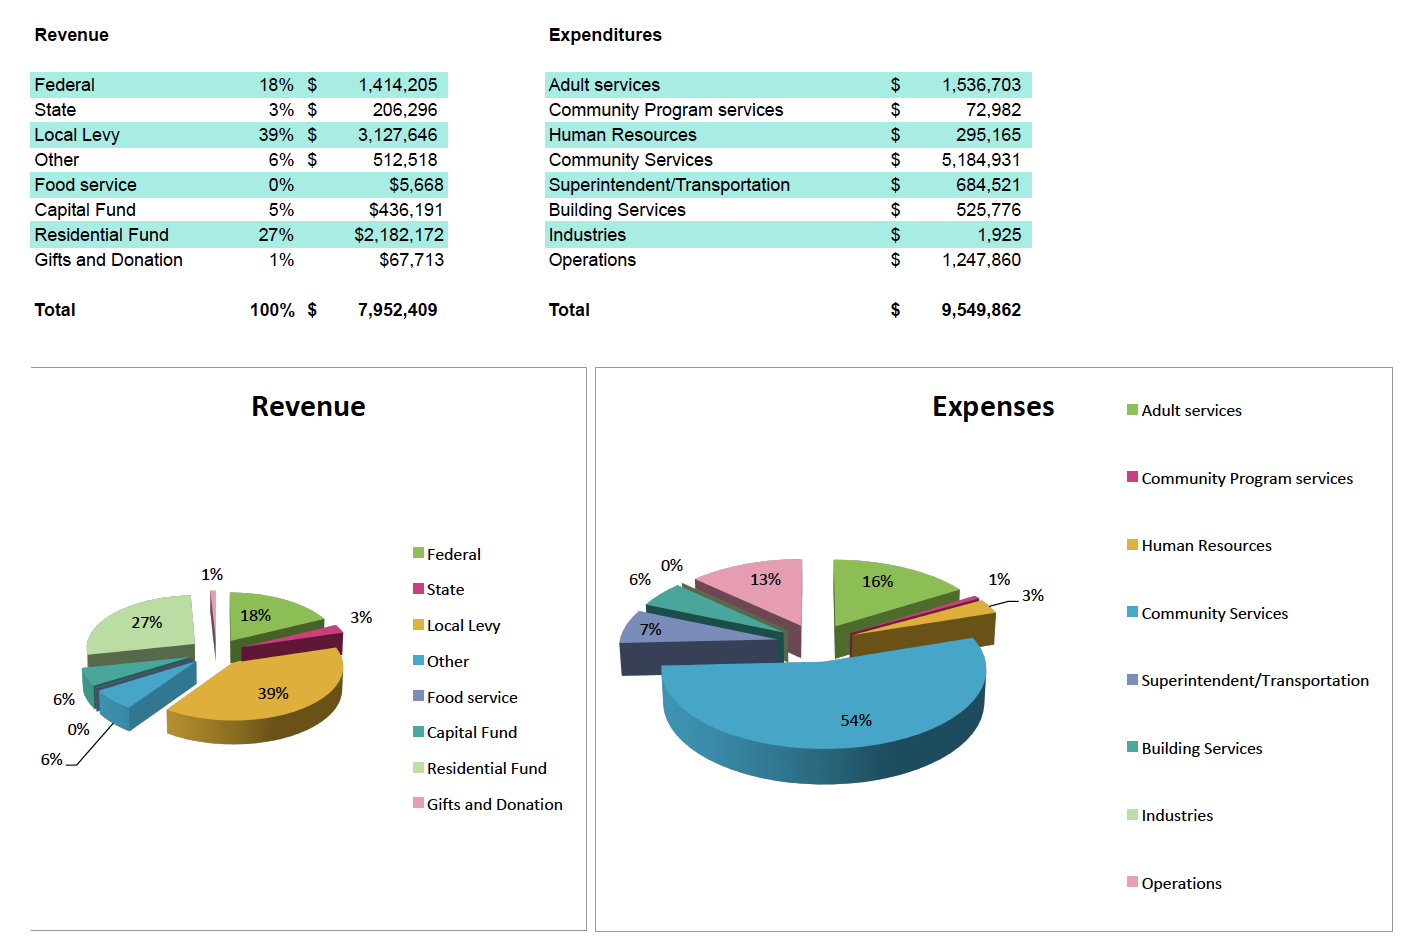 Financial Summary Expenses and Revenue